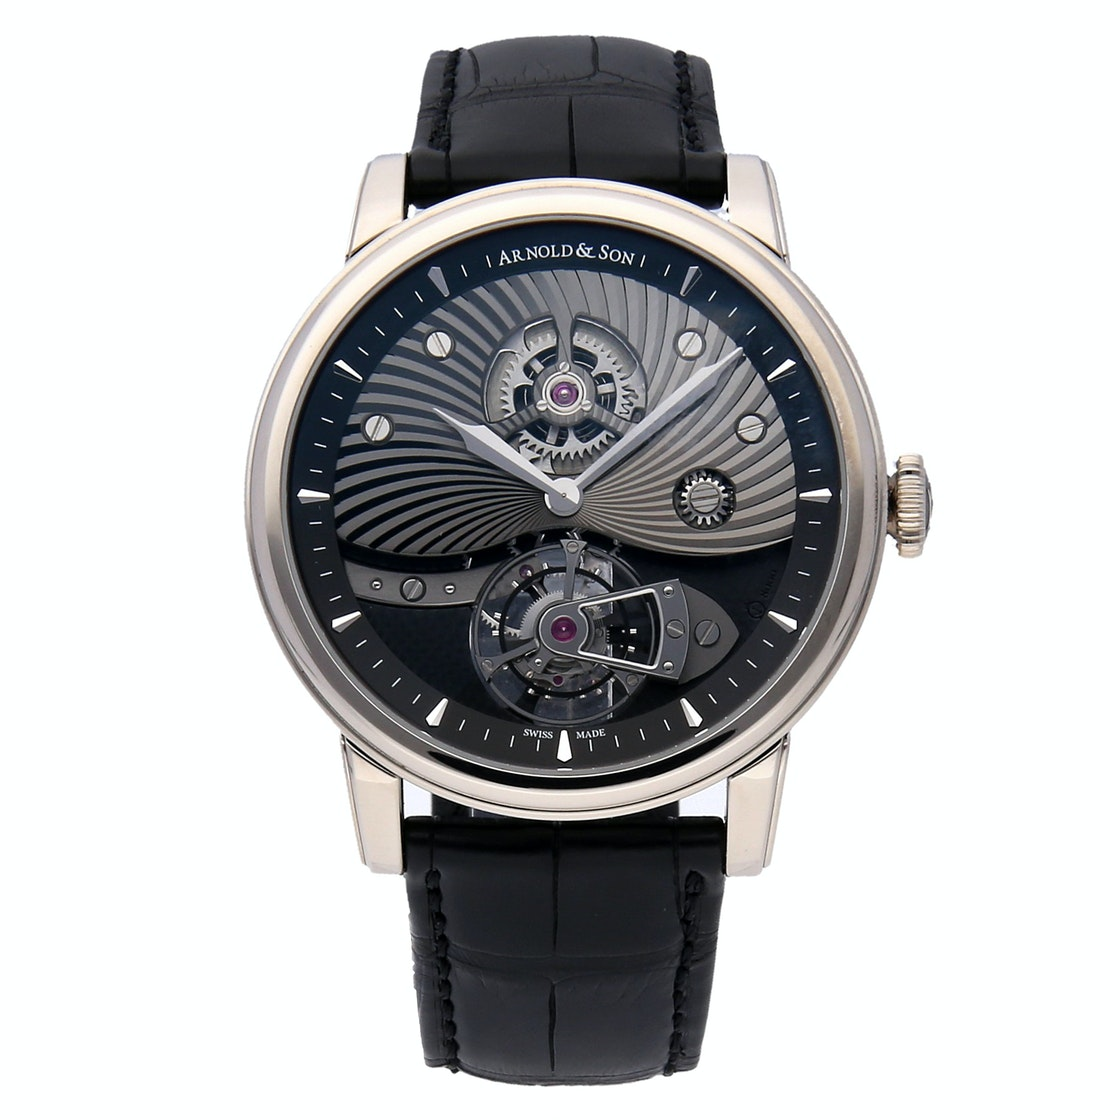 Arnold & Son TE8 Limited Edition 1SJAW.B02A.C113W